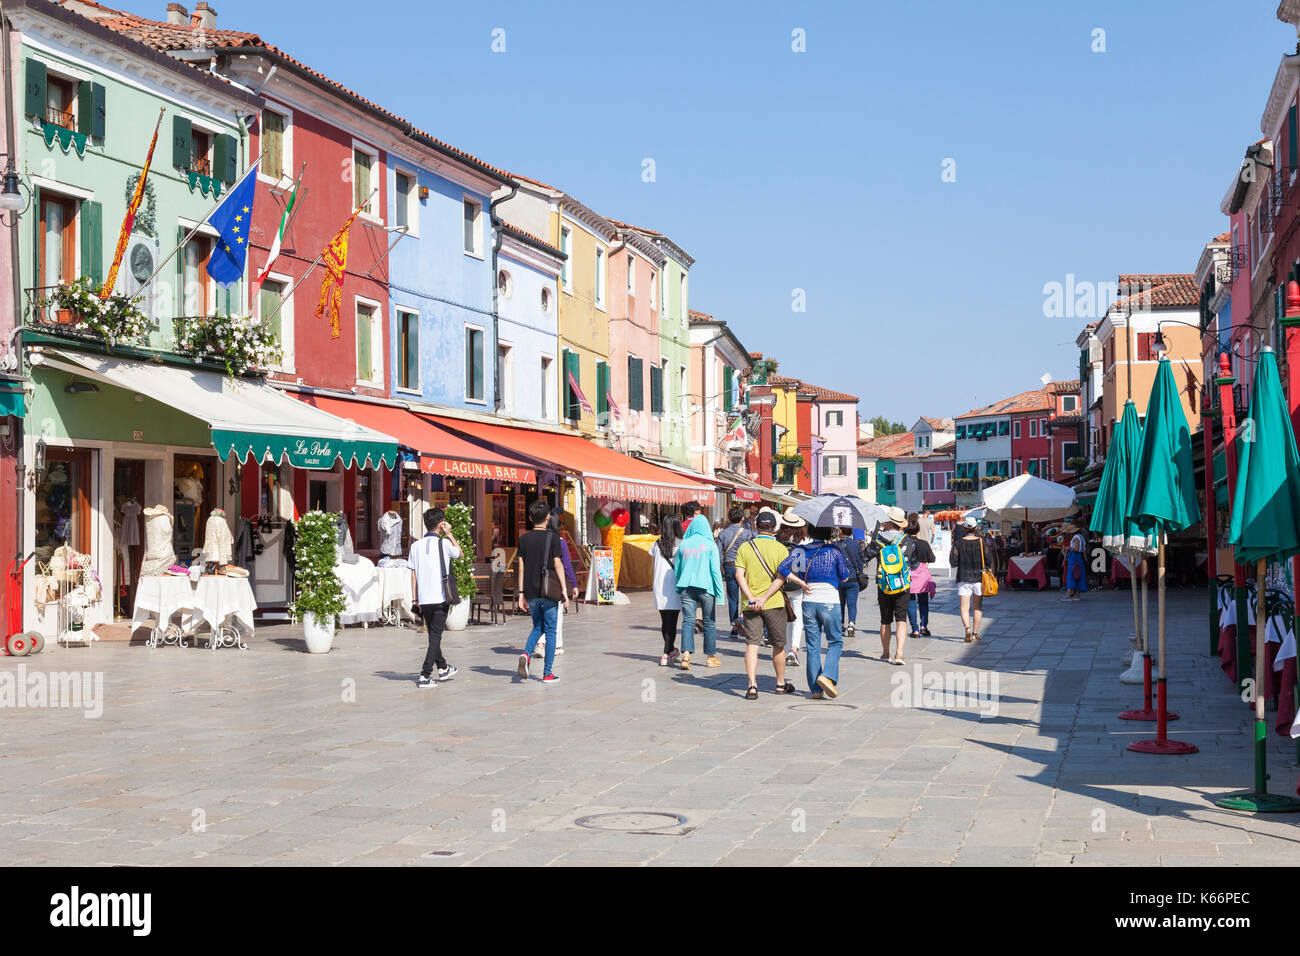 Group of tourists walking through Burano shoping area, Venice, Italy past brightly colored shops and restaurants Stock Photo